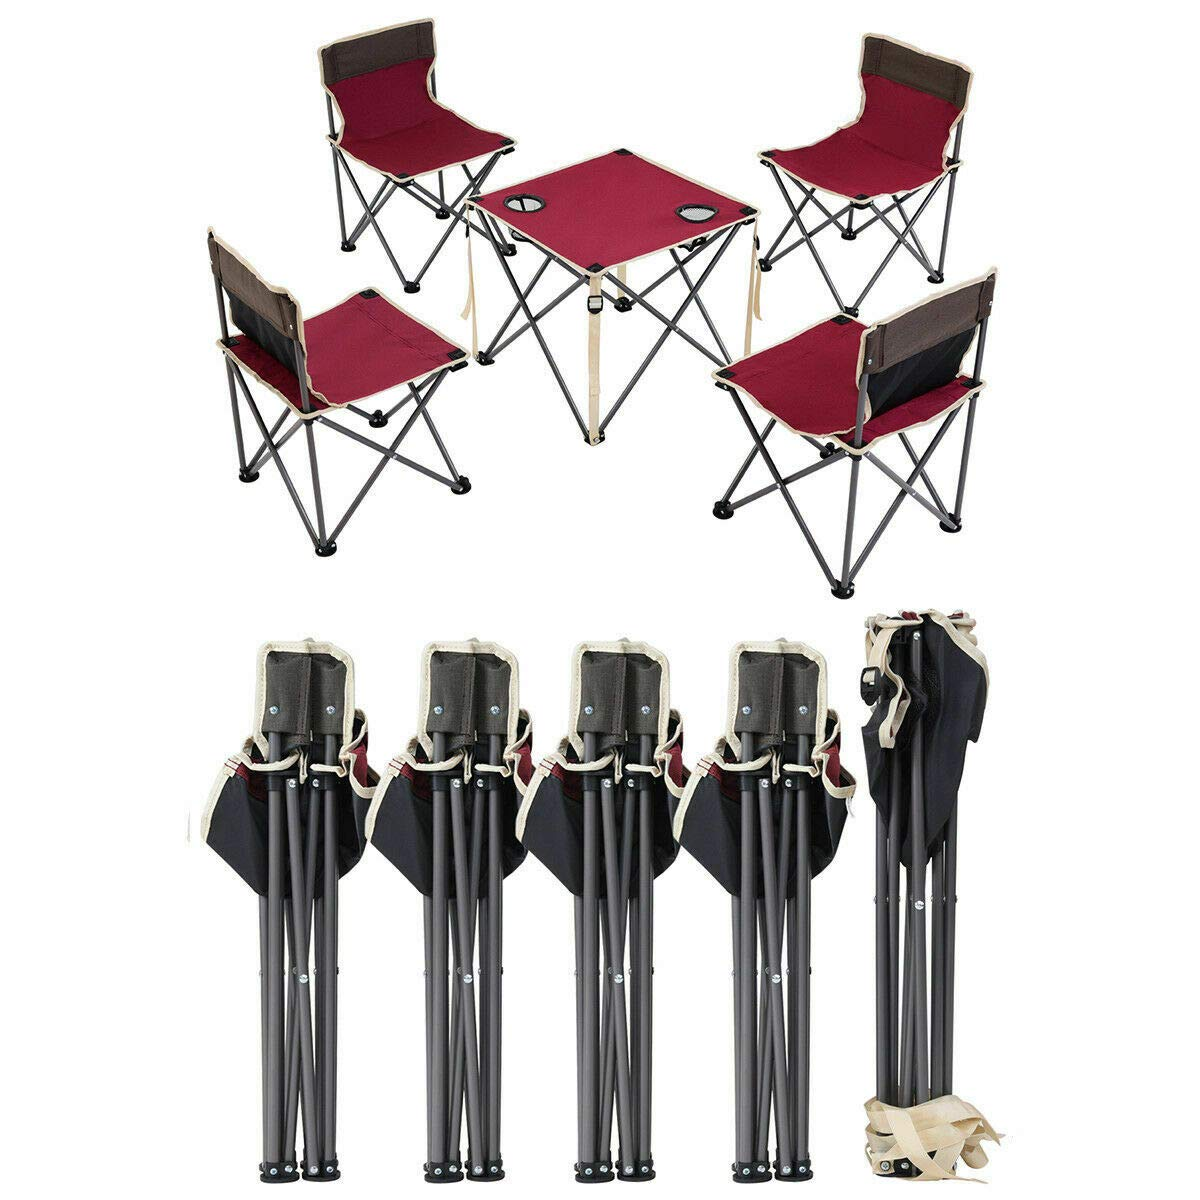 ANA Store Vacations Cookout Party Curl Stand Metal Iron Stell Frame Red Oxford Fabric Portable Folding Table Chairs Set Inside Outside Camp Beach Picnic with Carrying Bag by ANA Store (Image #6)